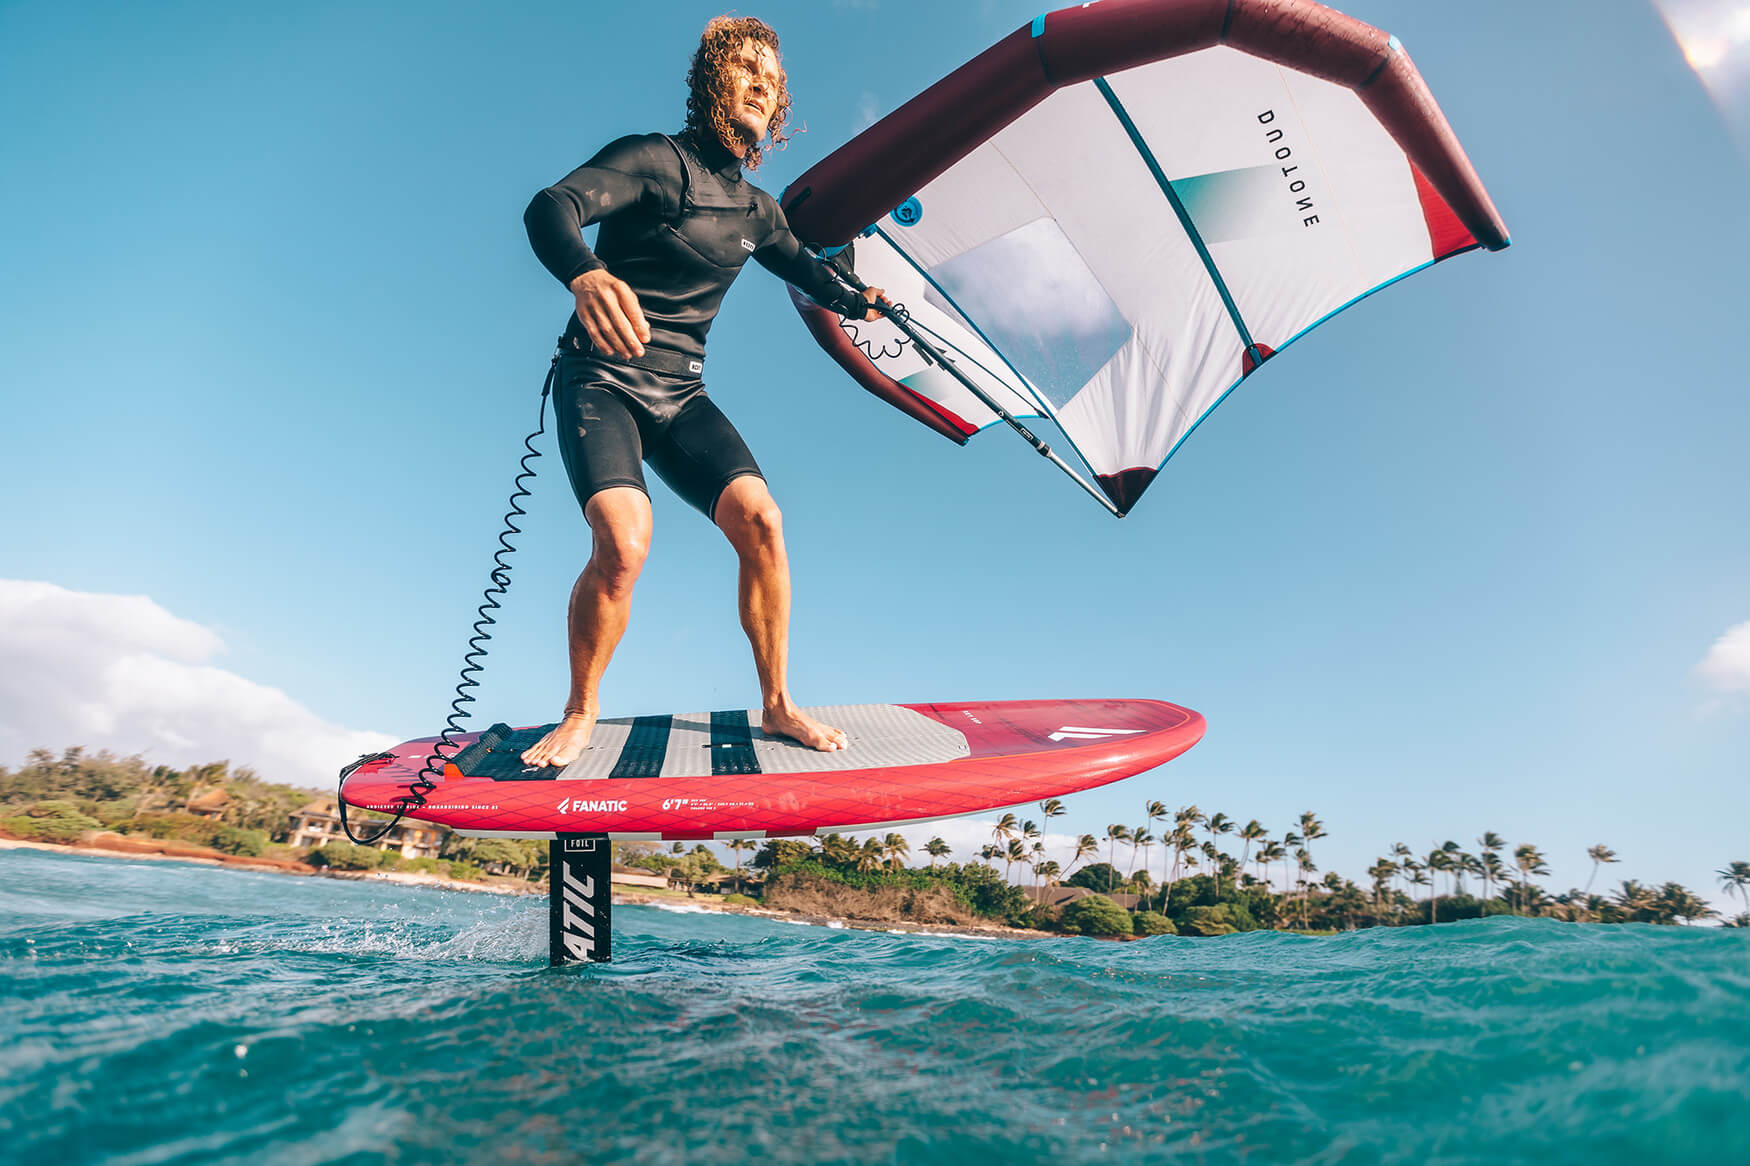 The Sky SUP makes a great lightwind or beginner wing foil board.